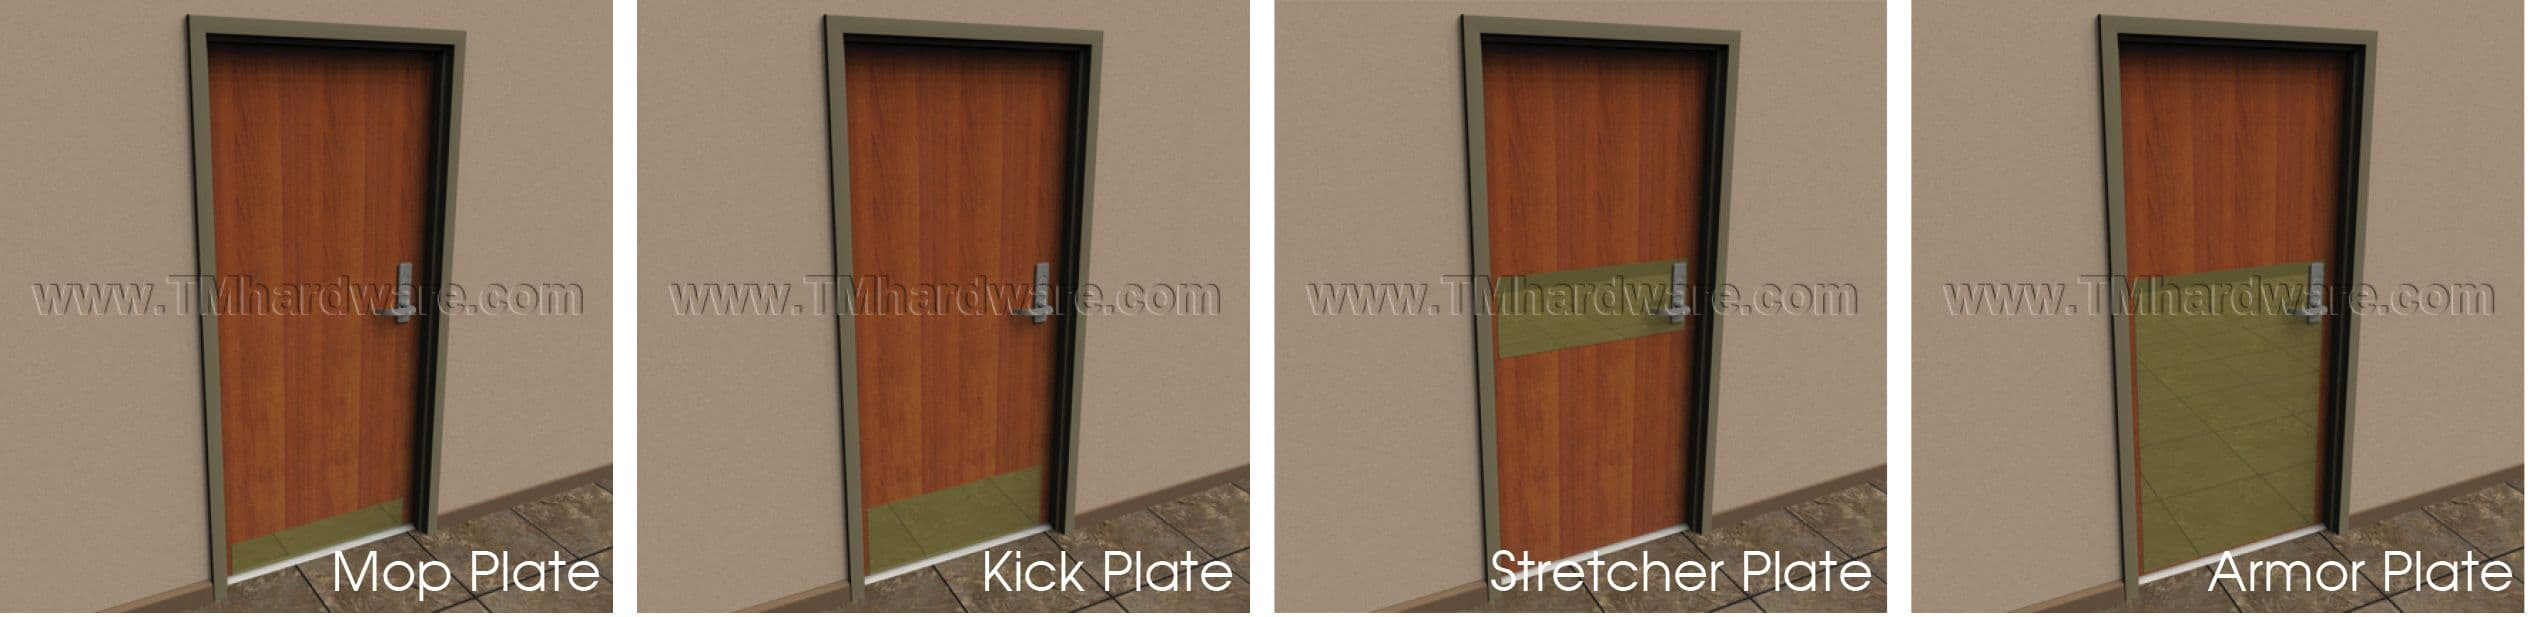 Armor Plate 13\ -48\ H x Up to 48\ W & Rockwood K3125 Laminate Plastic Door Plate .125\